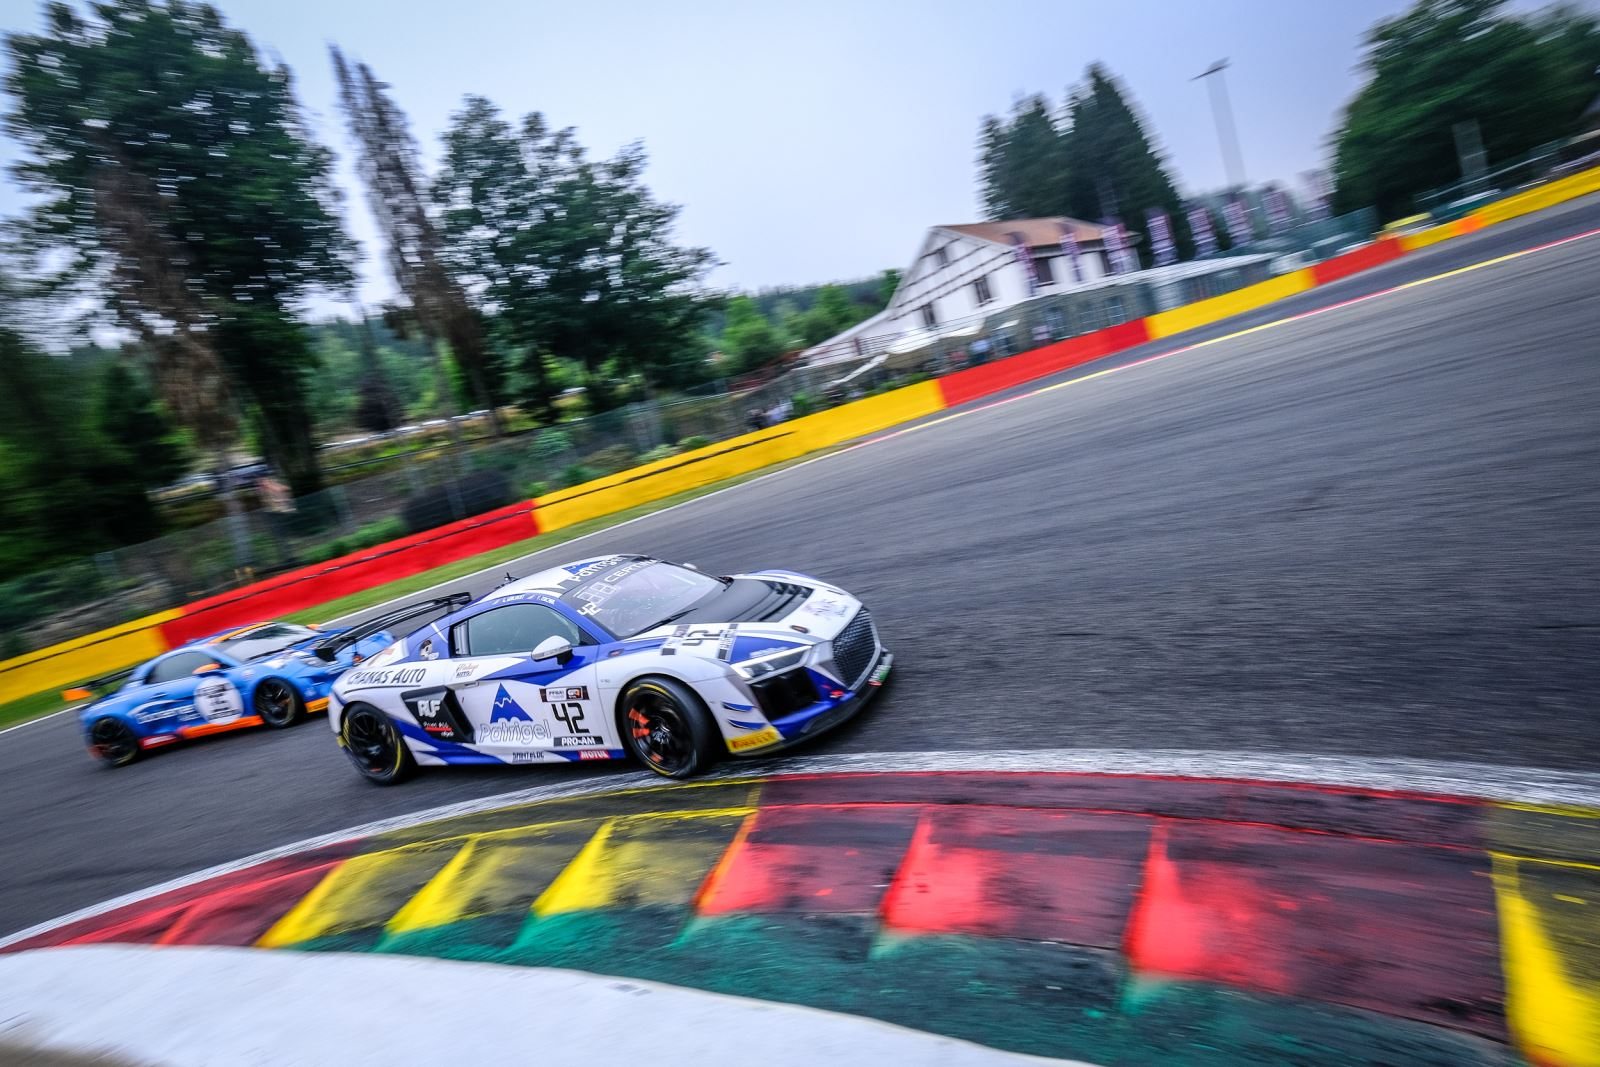 Spa Francorchamps Calendrier 2019.Ffsa Gt 2019 Spa Francorchamps Course 2